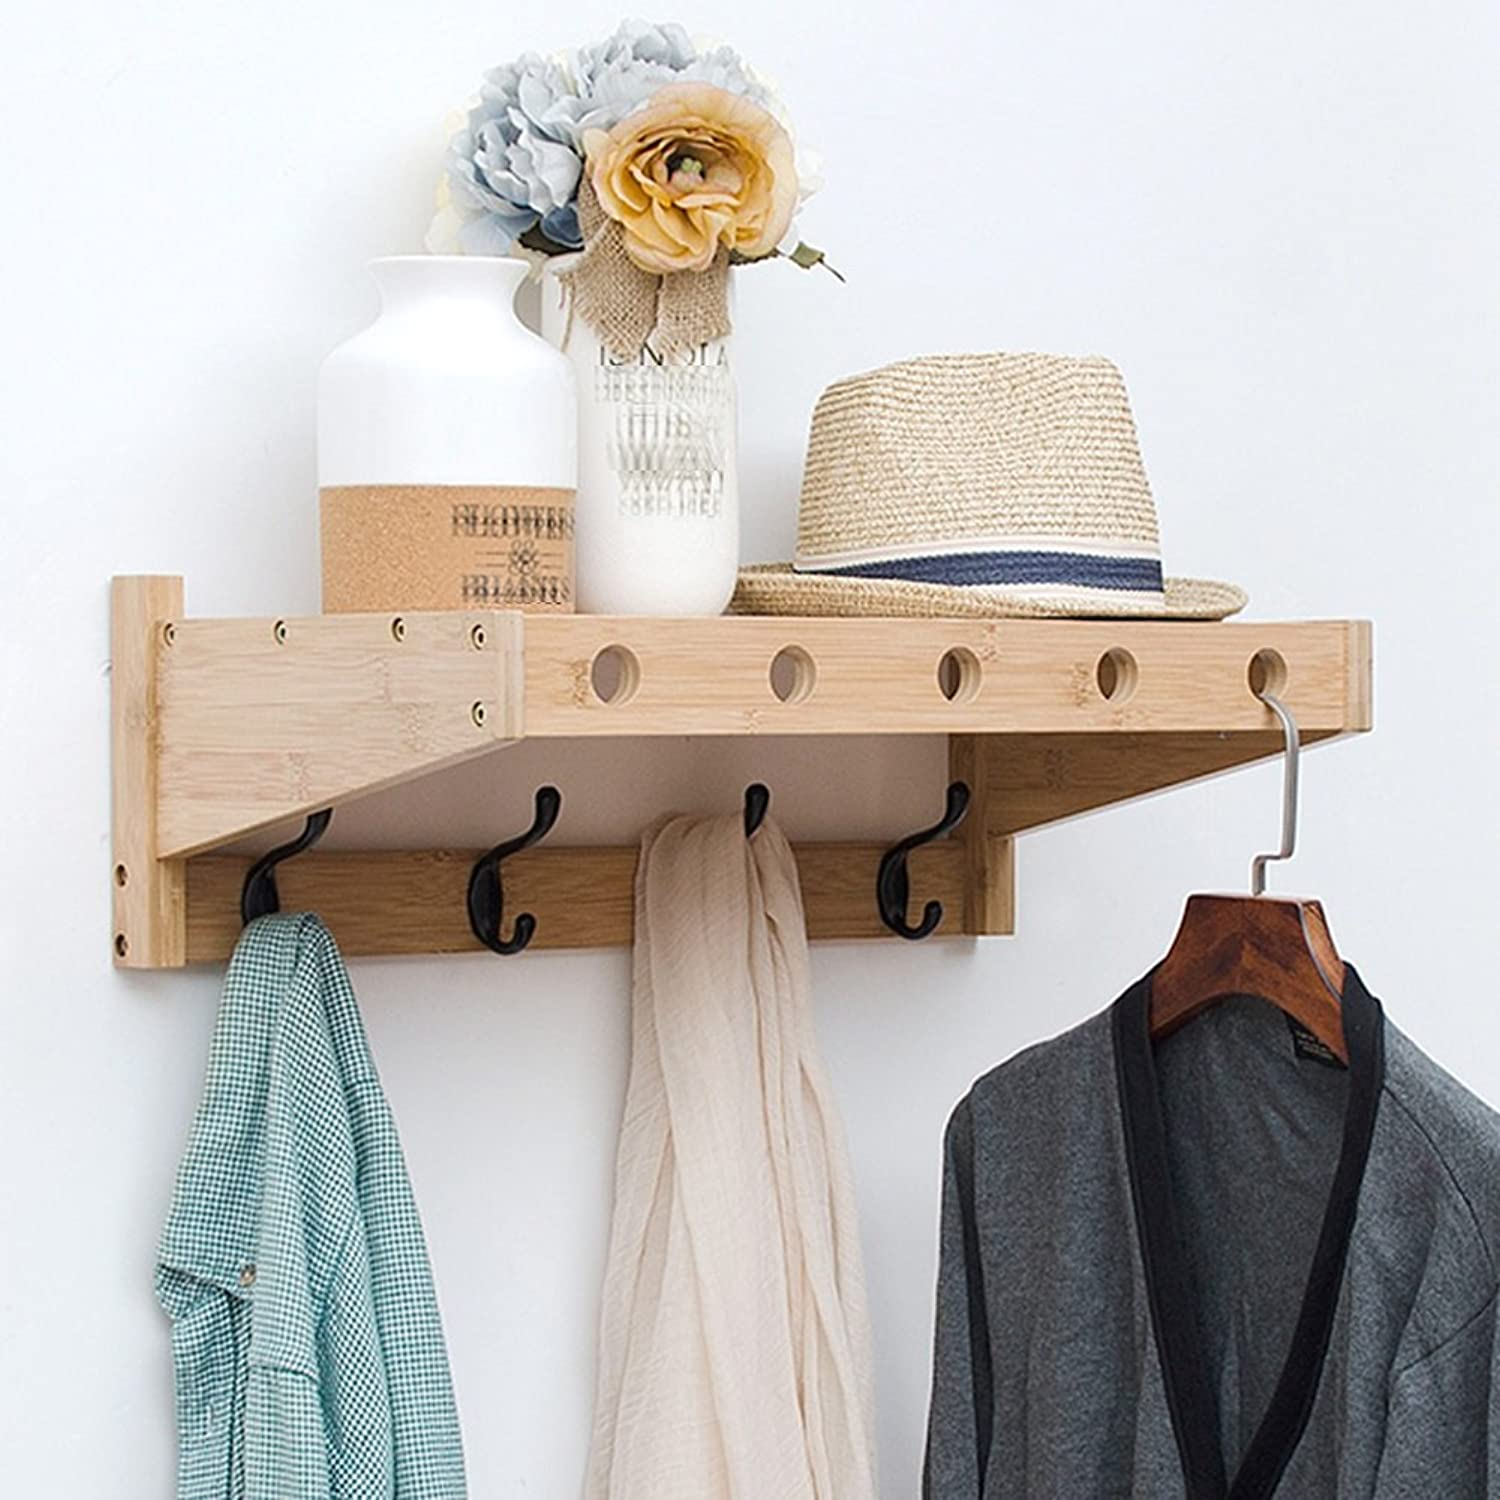 LIANGLIANG Wall Mounted Coat Rack The Top Layer Can Store A Fixed Hanger Bamboo 3 colors 3 (color   Wood color, Size   52.5  30  18cm)